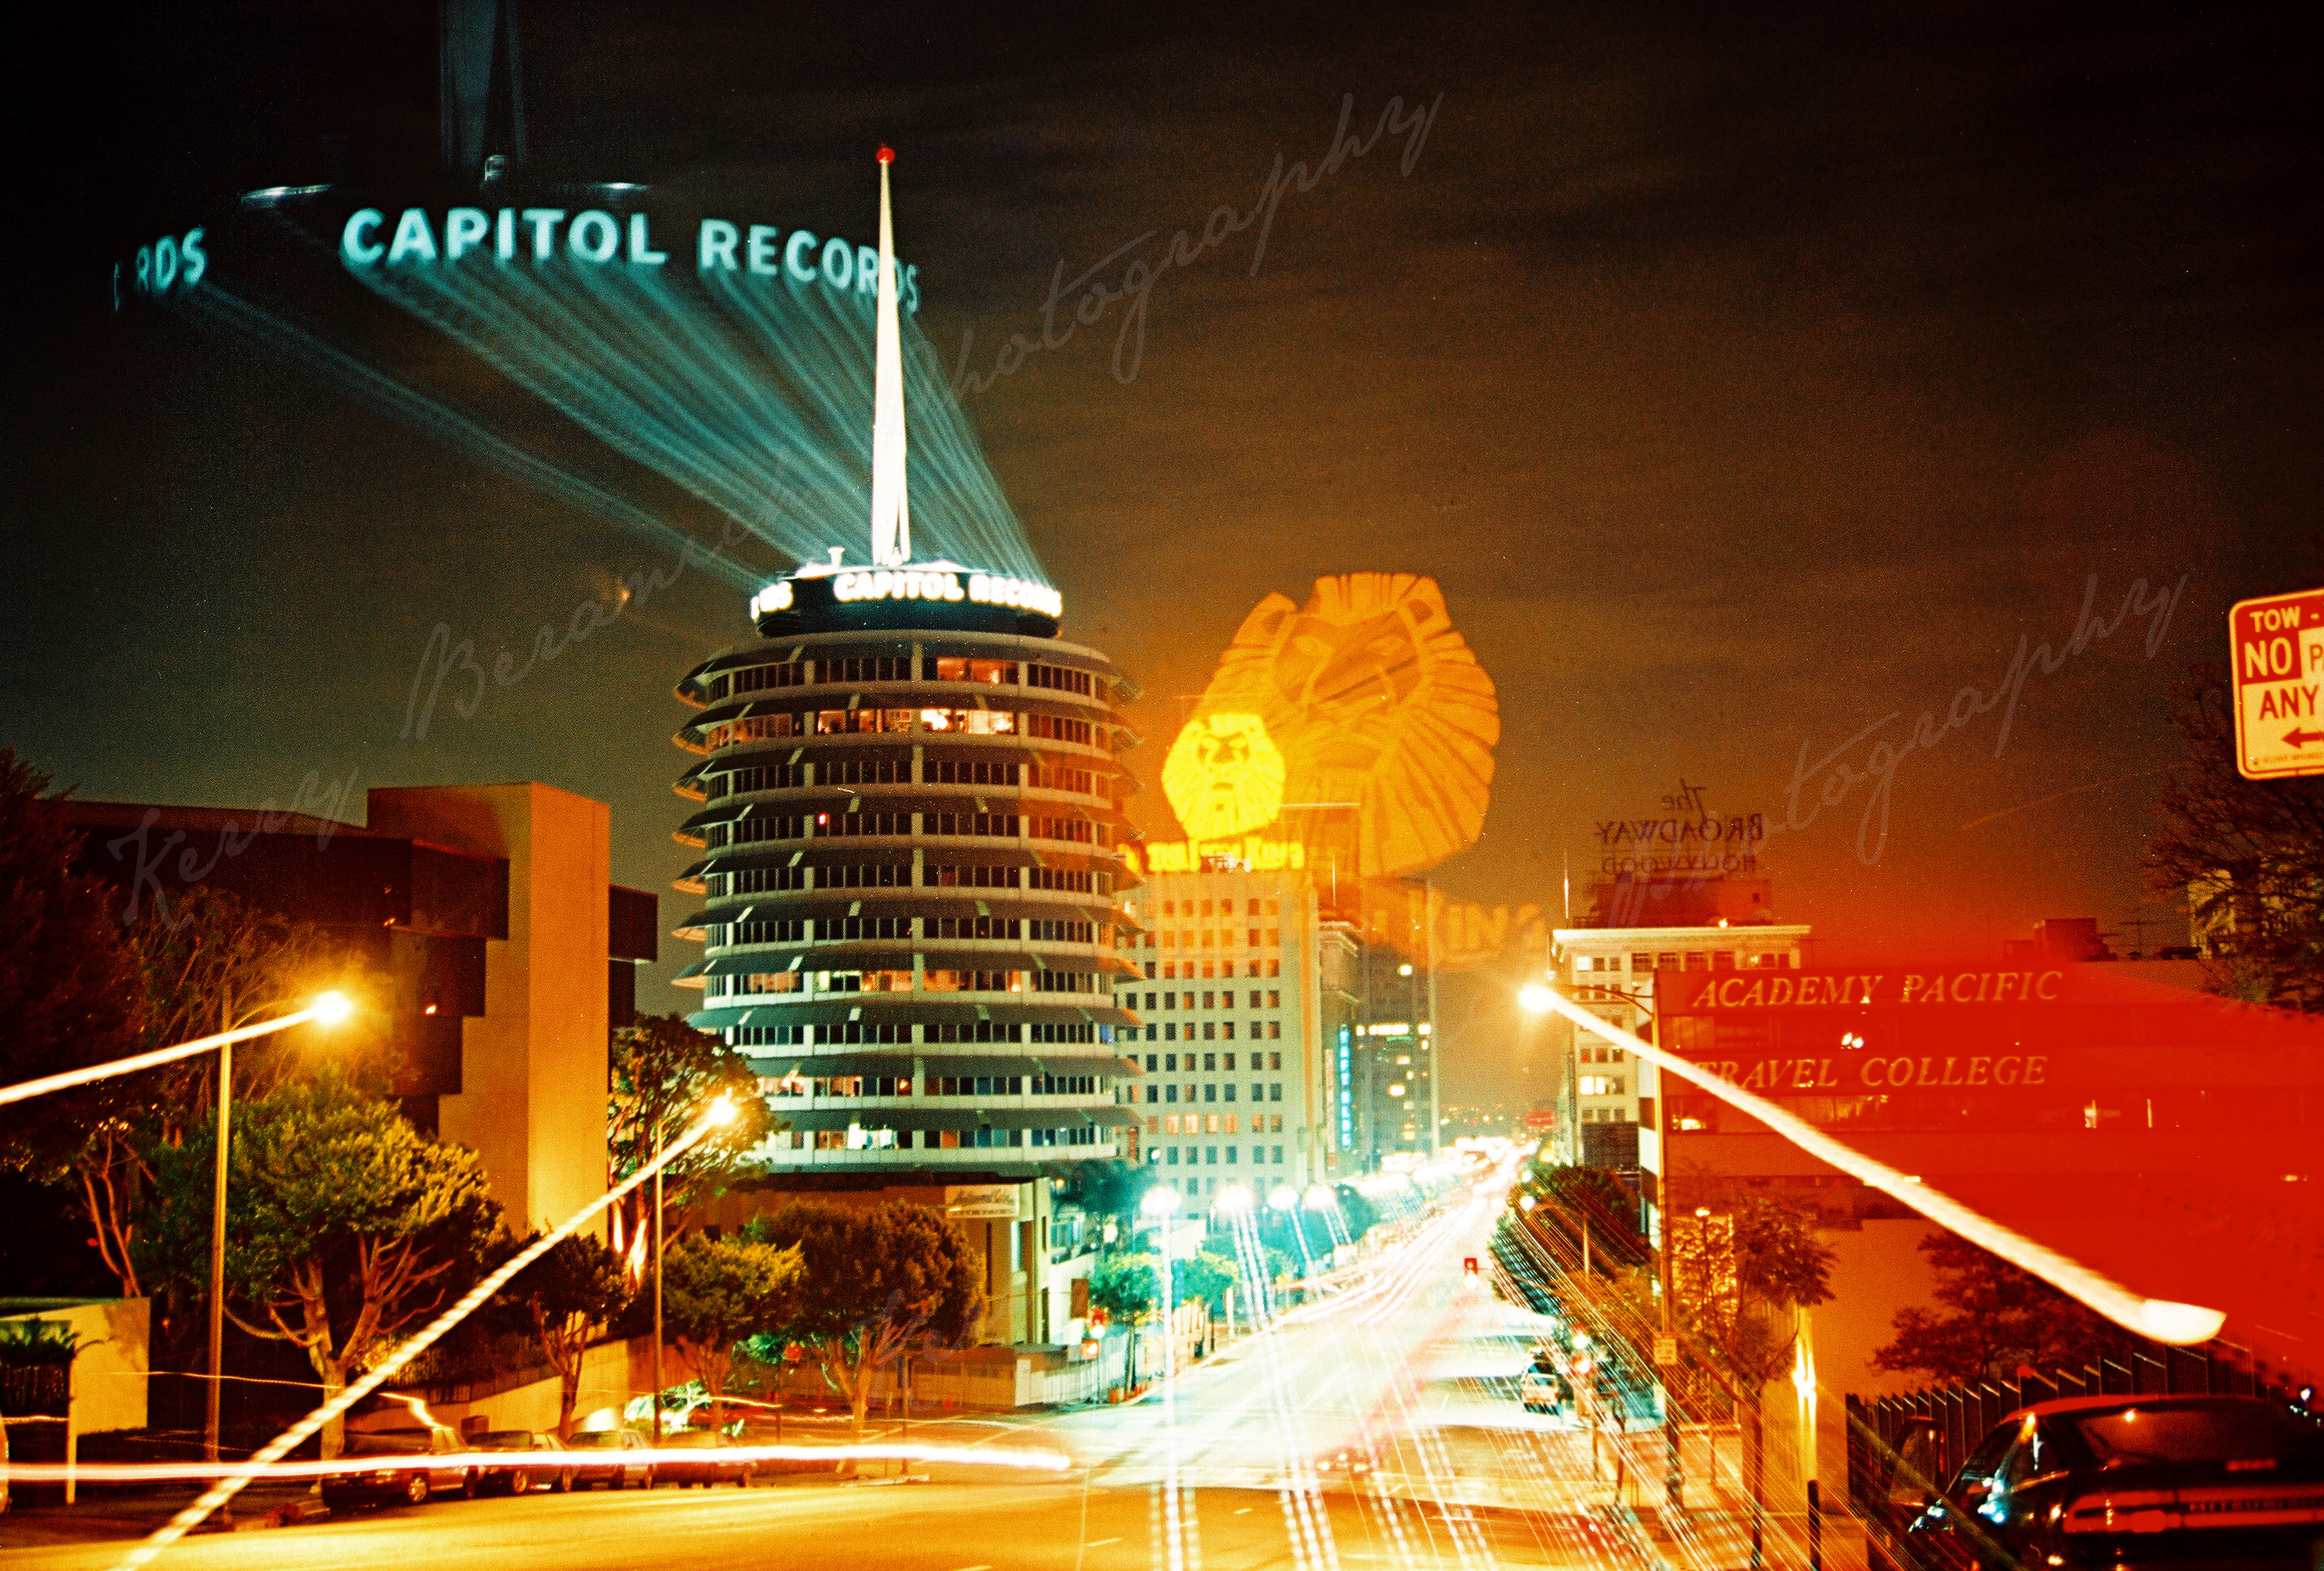 Capitol Records watermark